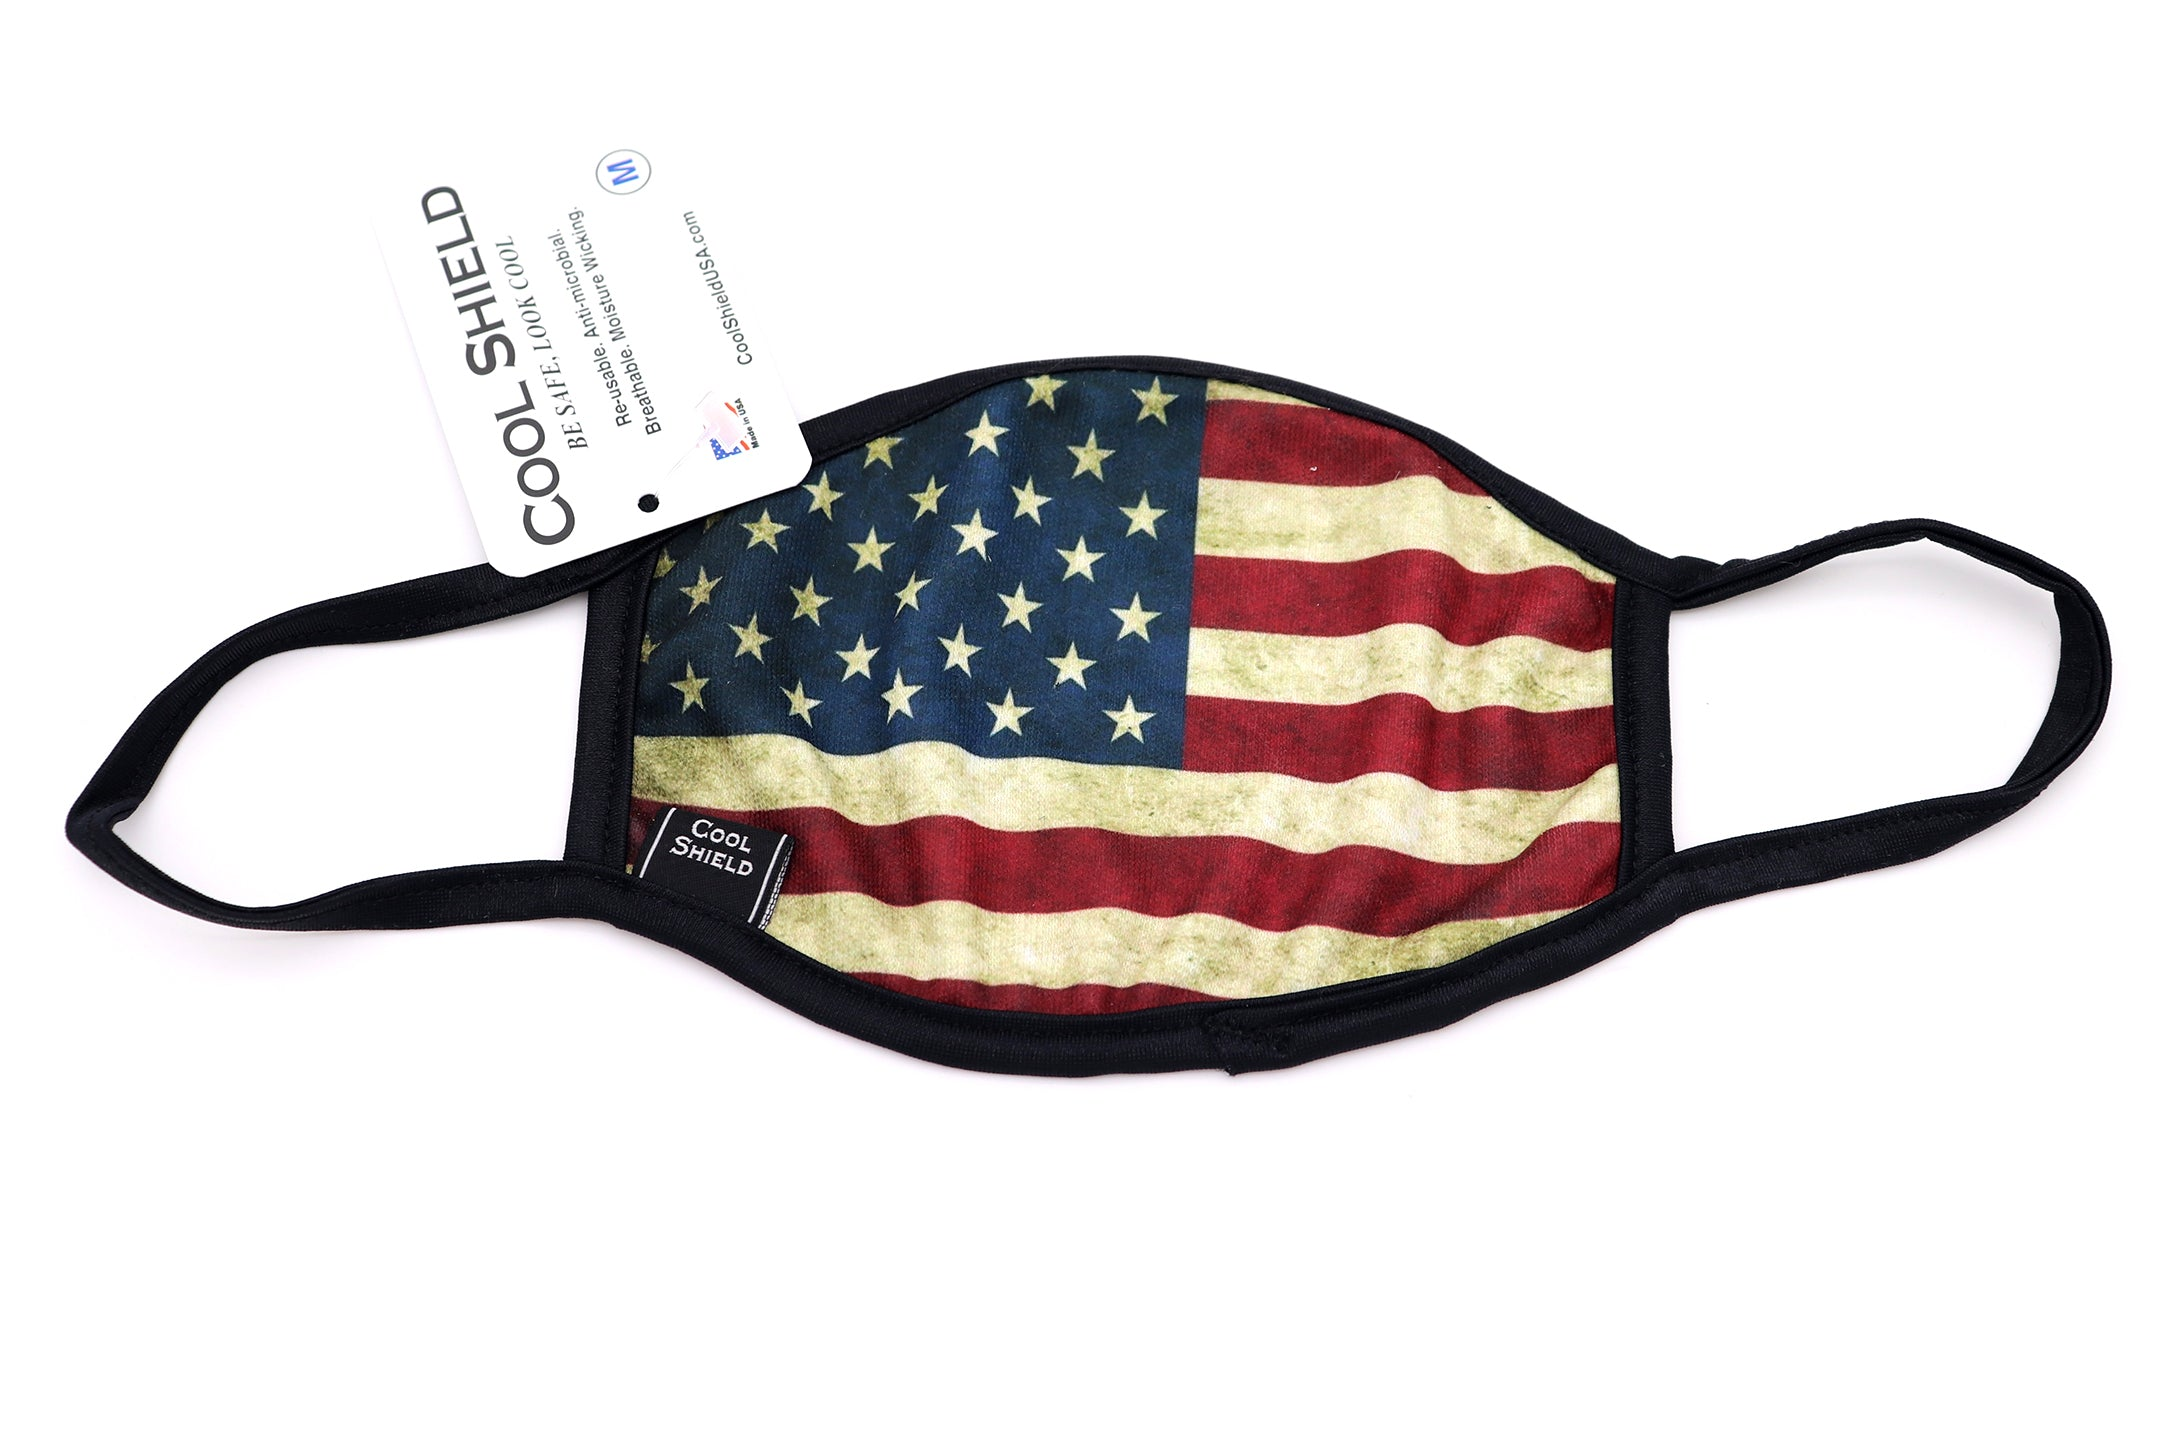 USA Flag Face Mask Old Glory vintage looking faded us flag American, face mask adults for women or men. Helps with protection, washable mask protection, corona virus protection, corona virus, self protection, reusable face mask, re-usable mask, cool max, made in the usa.